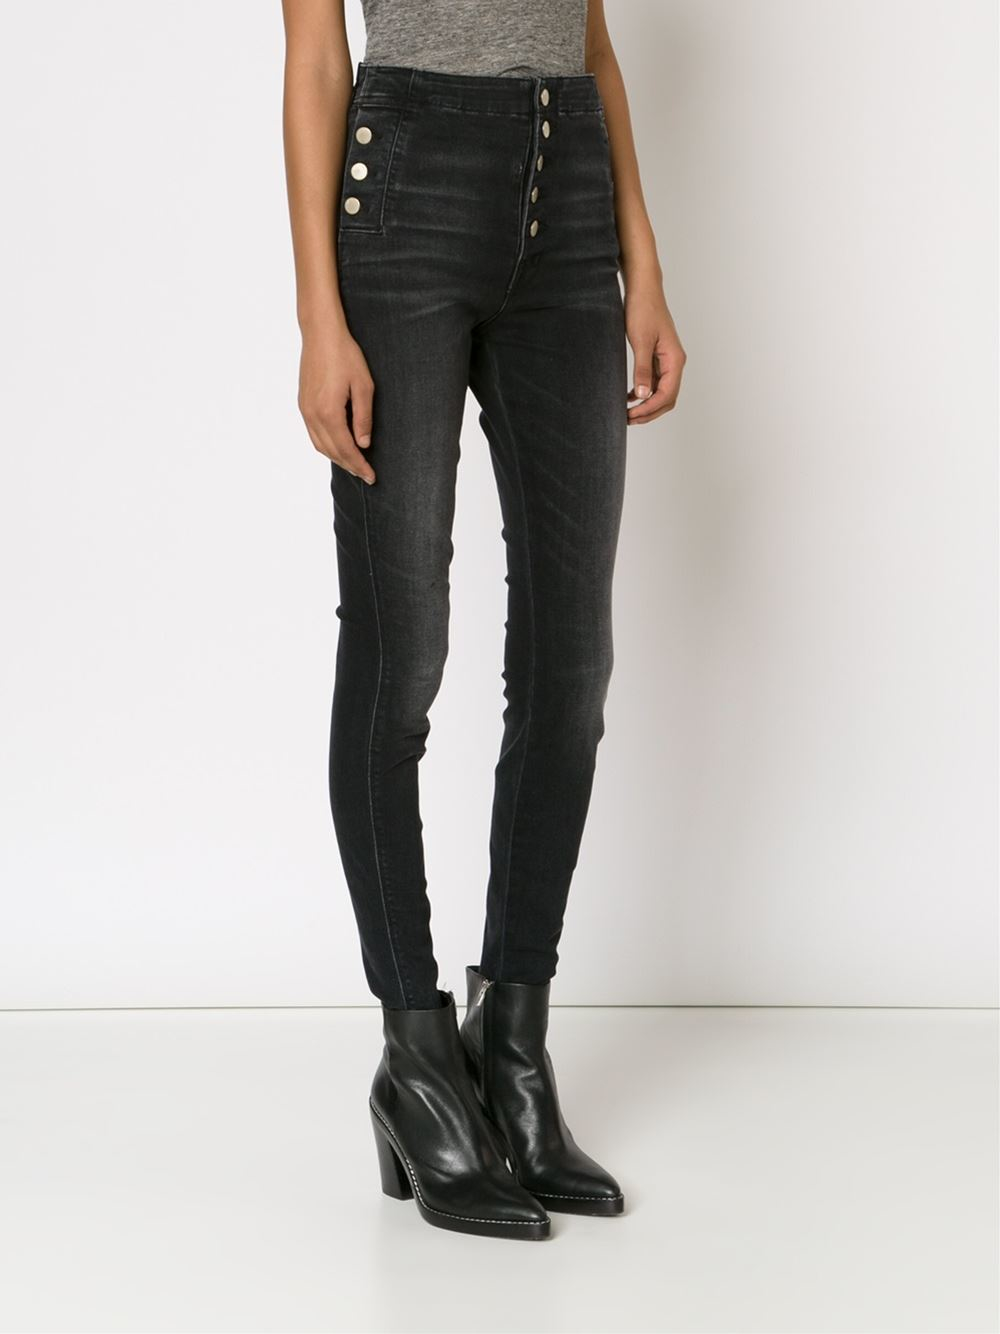 J brand High Waisted Skinny Jeans in Black | Lyst